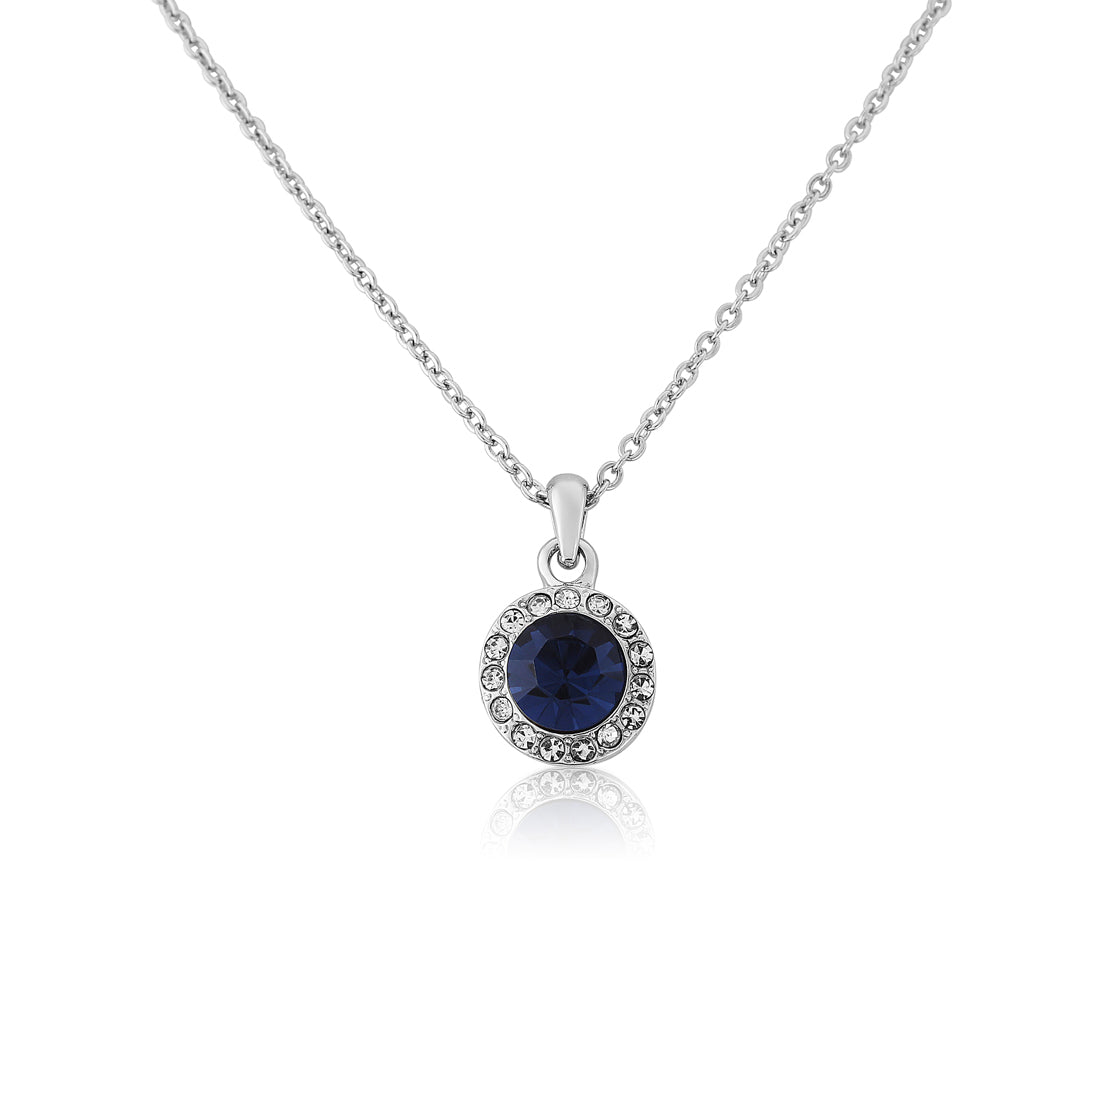 Moonlight Shimmer Navy Crystal Pendant